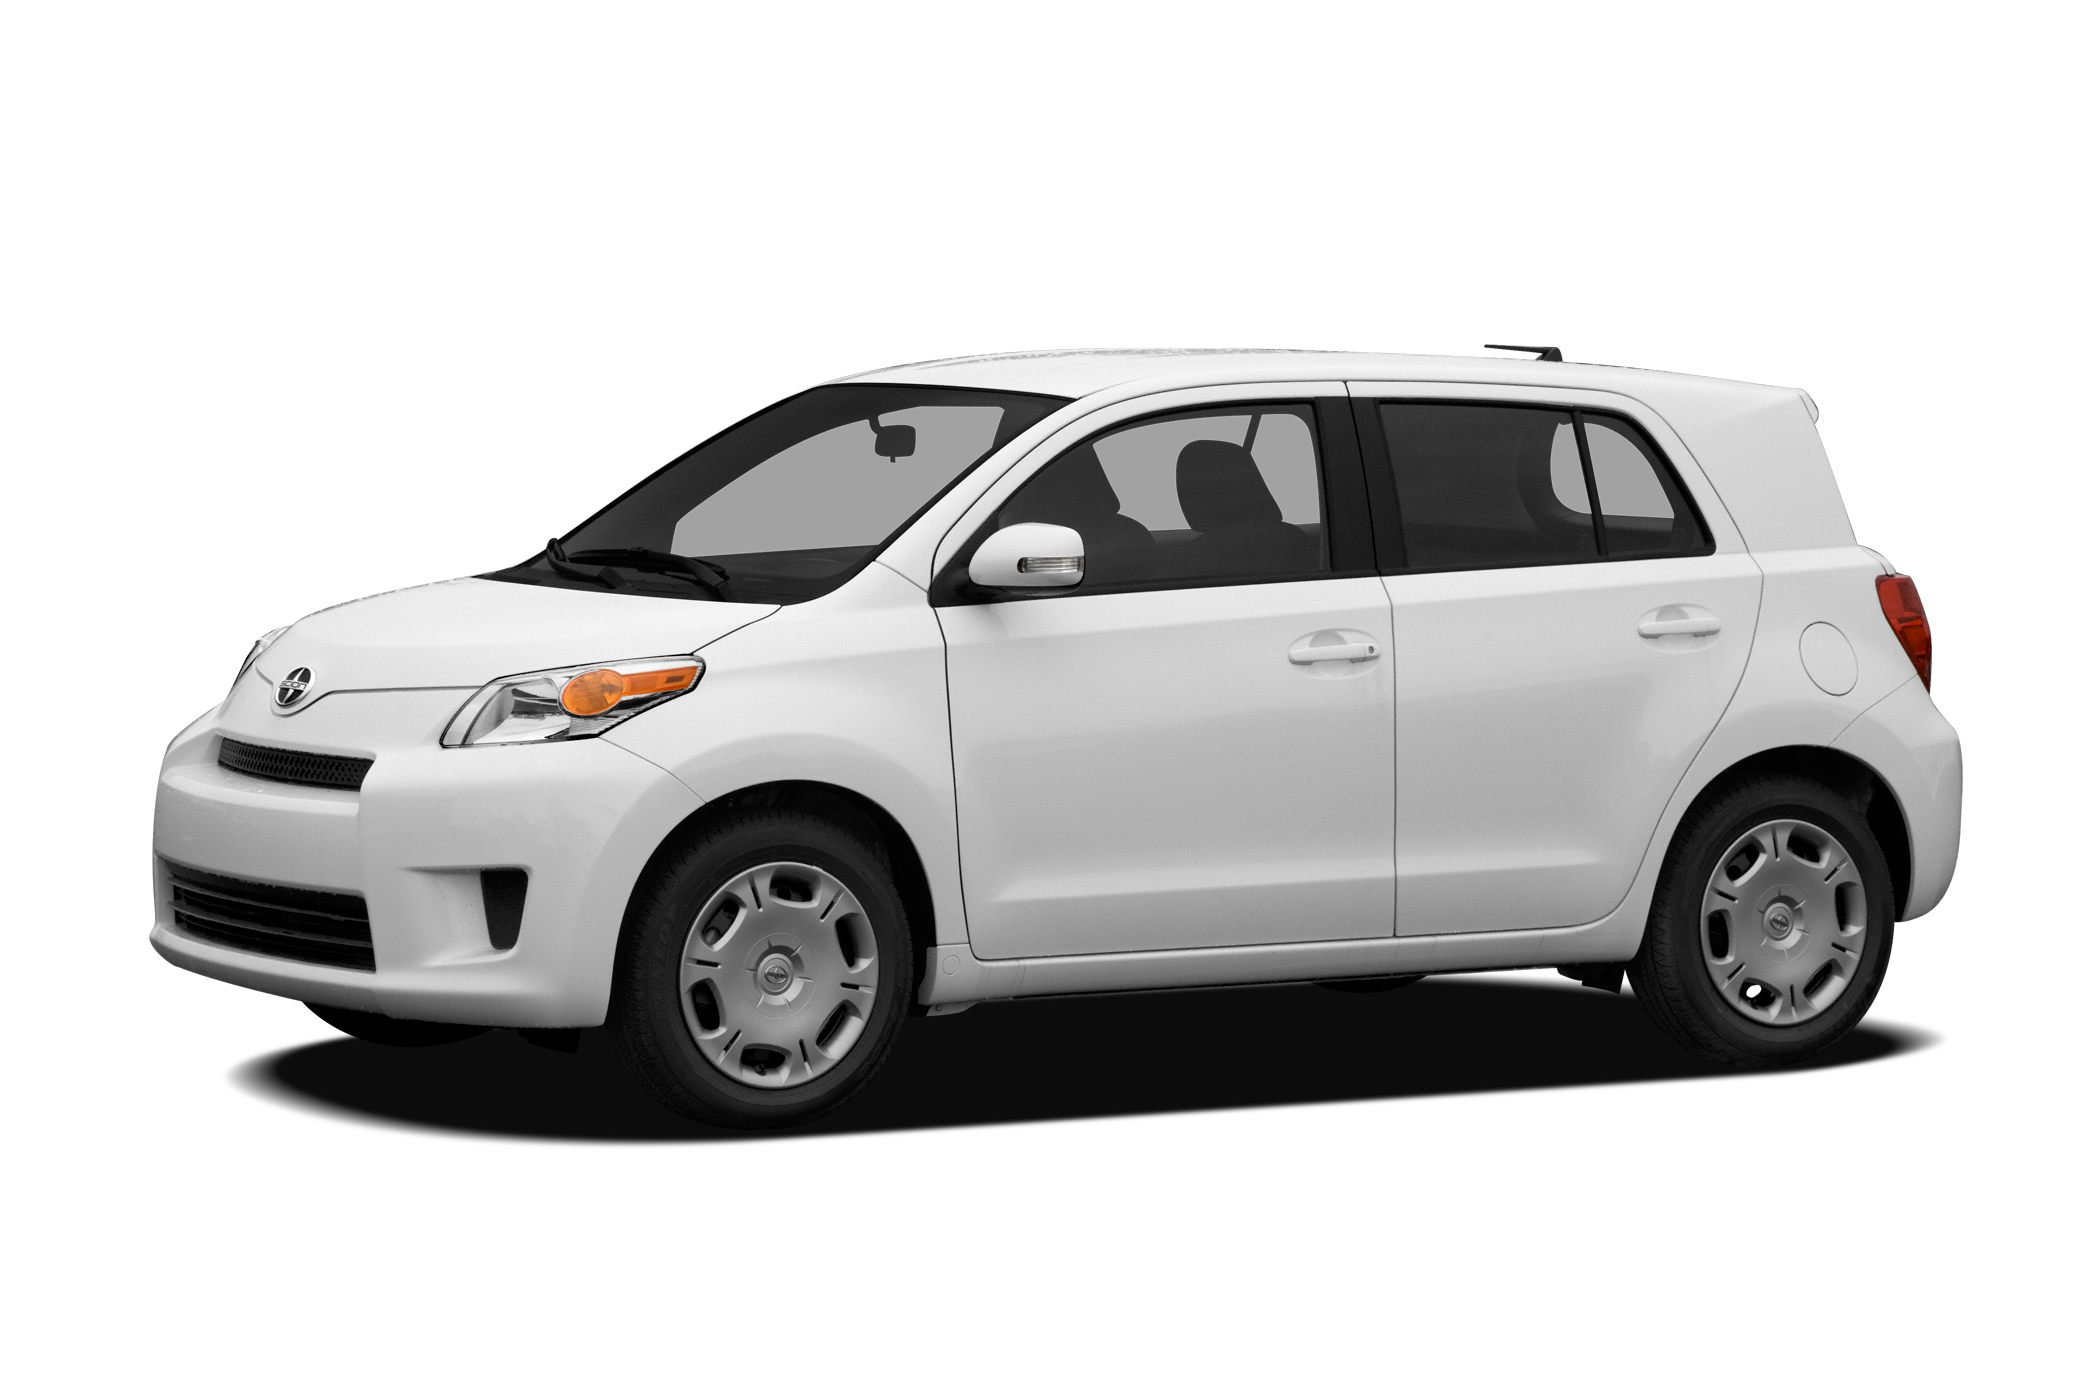 2012 Scion xD Base GREAT MILES 26279 xD trim MAGNETIC GRAY METALLIC exterior and DARK CHARCOAL